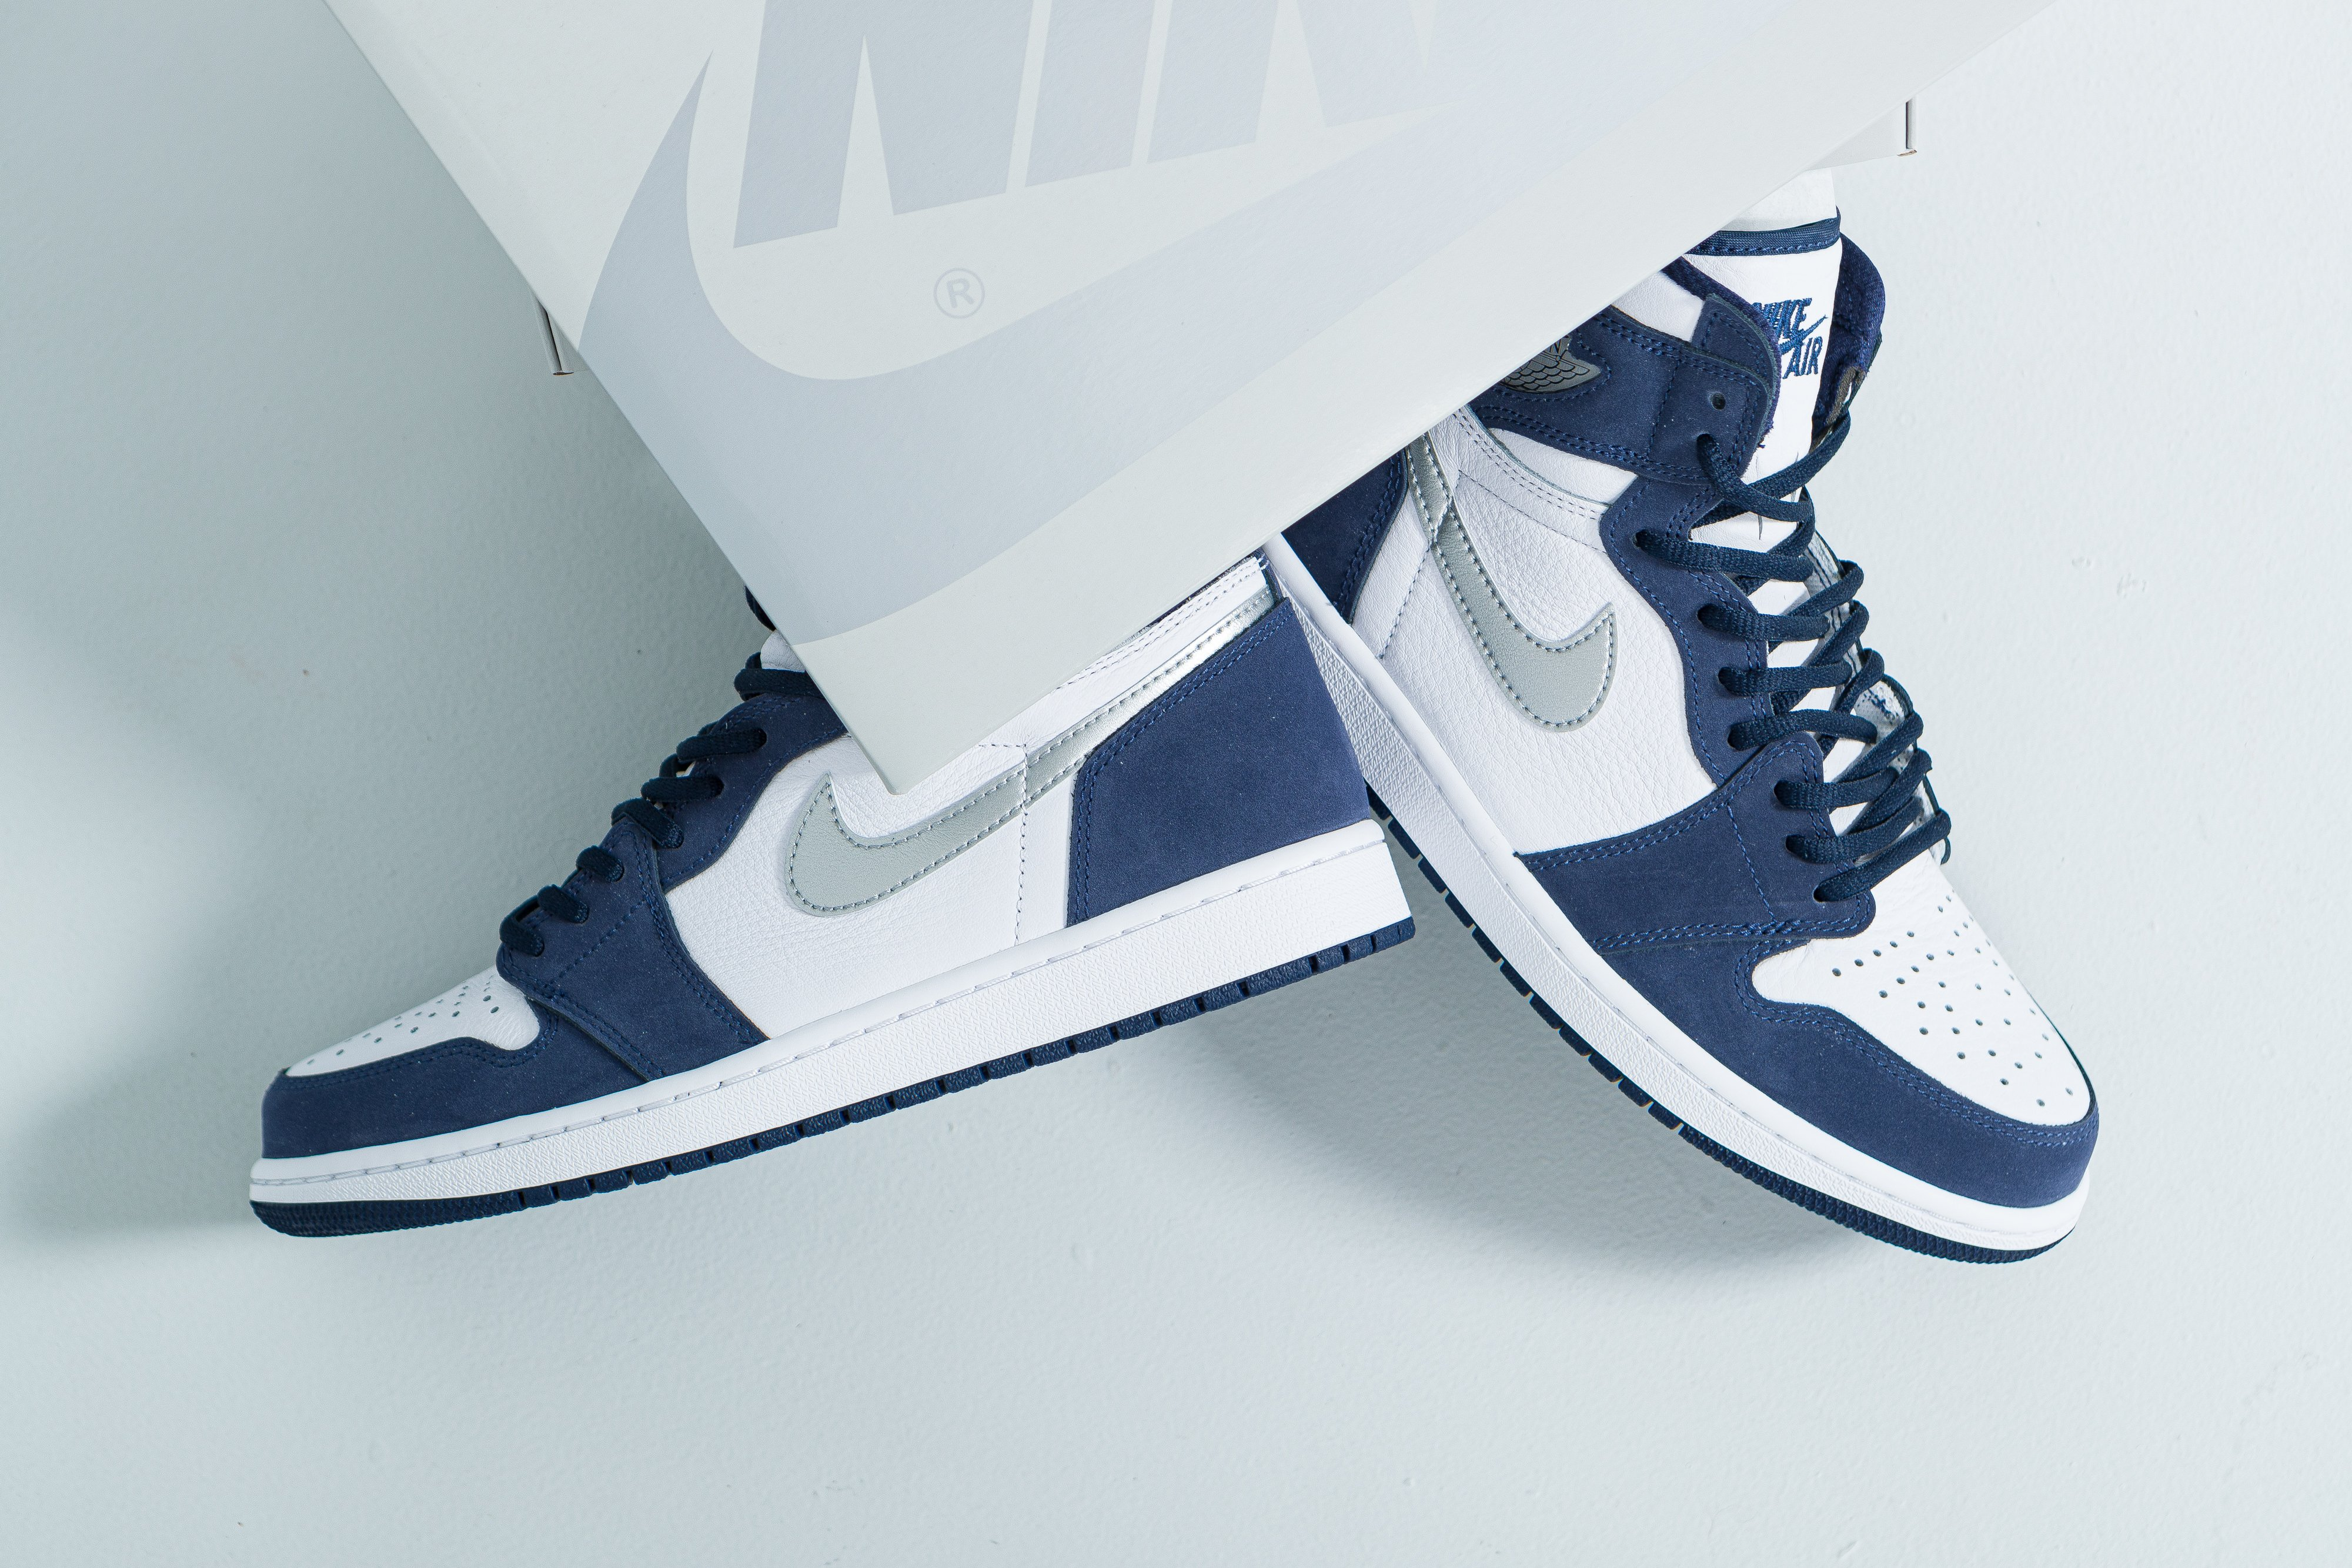 Up There Launches - Nike Air Jordan 1 Retro CO.JP 'Midnight Navy'